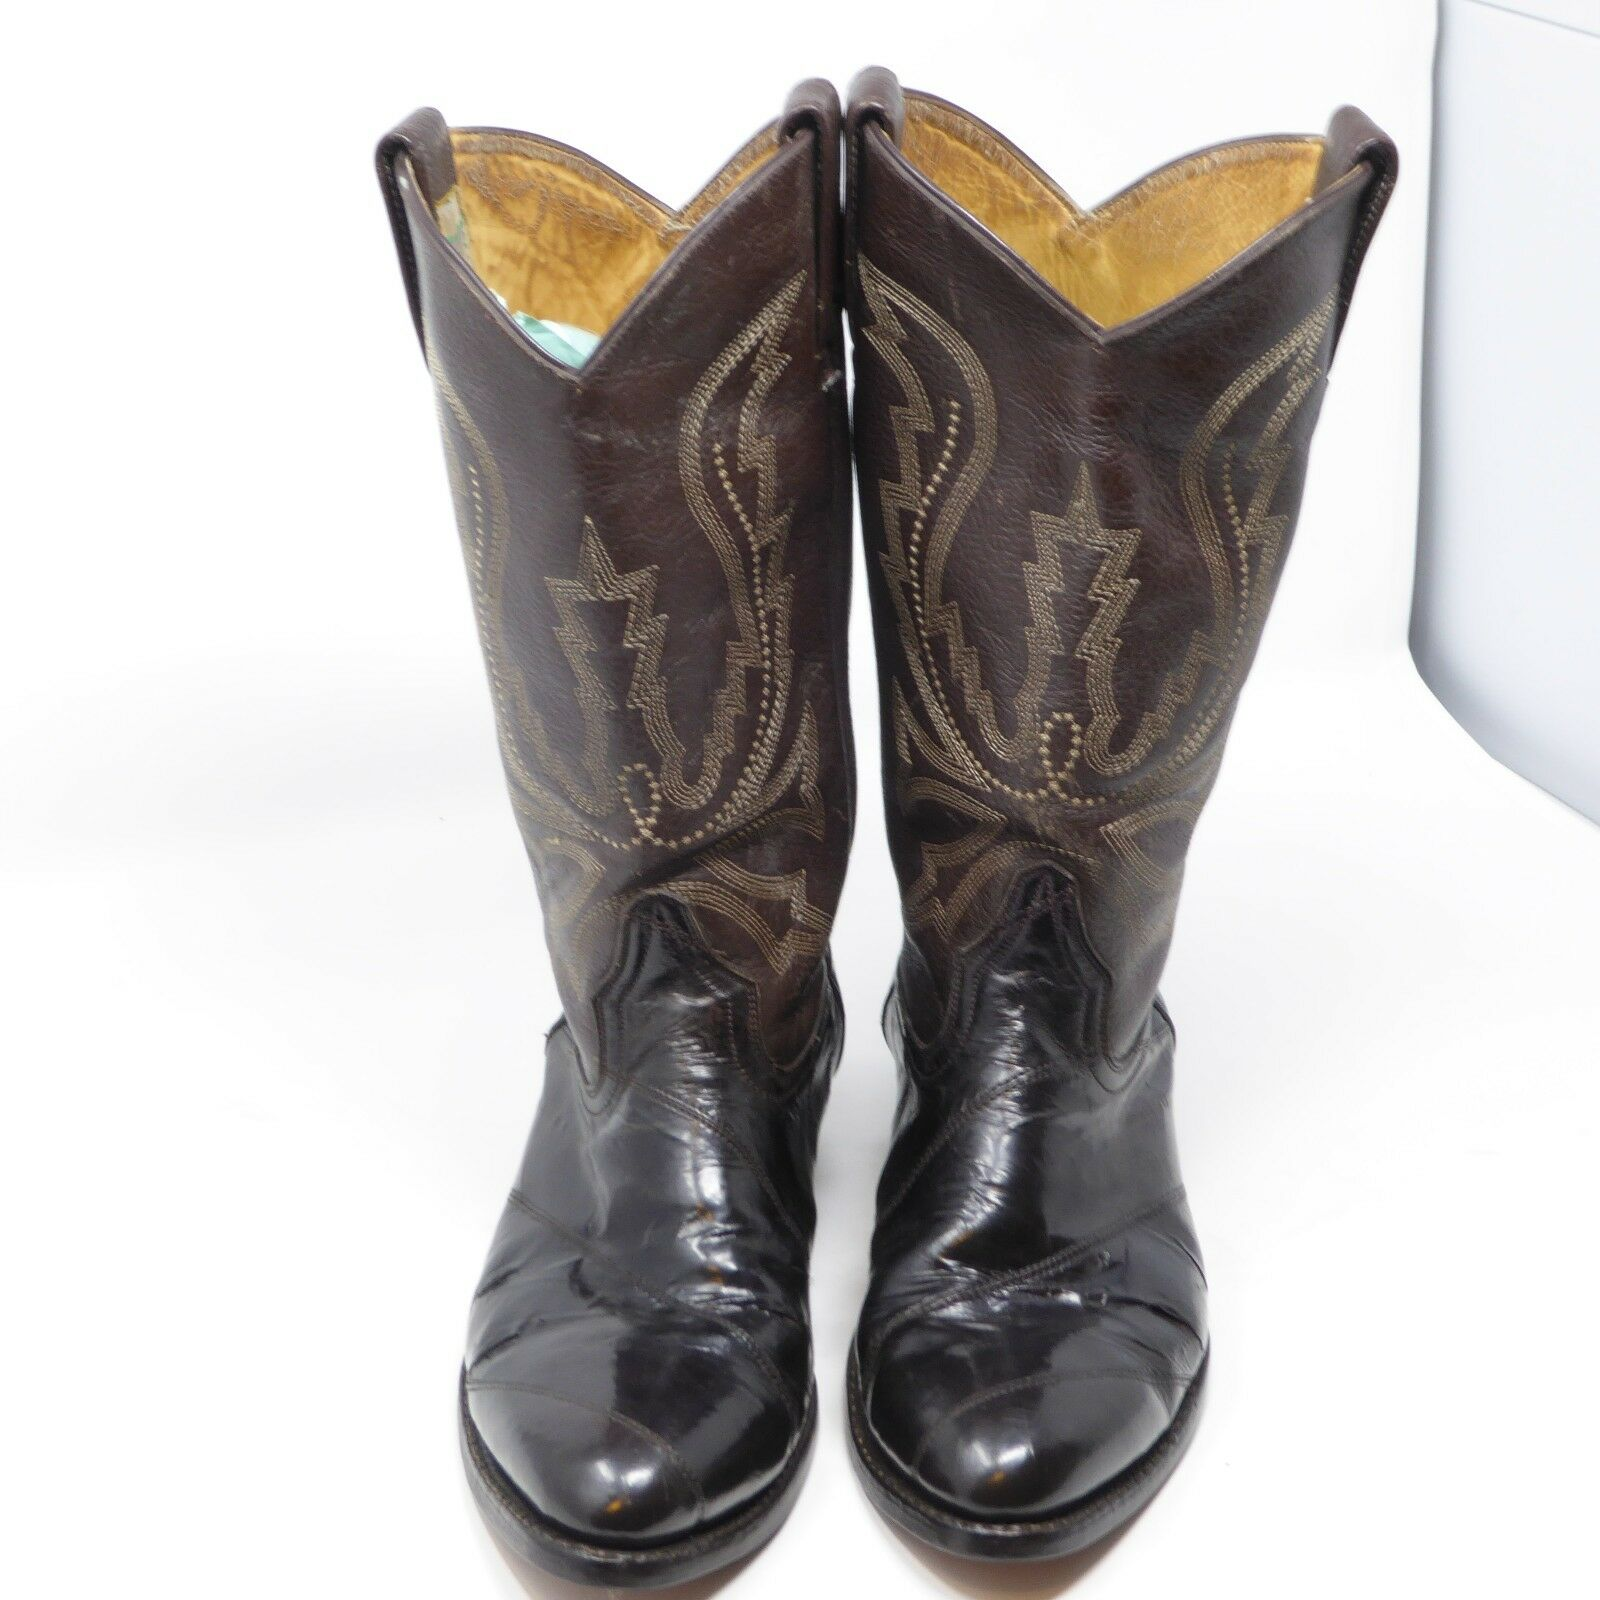 """MEN'S COWBOY BROWN & BLACK LEATHER BOOTS BY """"BOOTS AFRICAN"""" Size 9"""